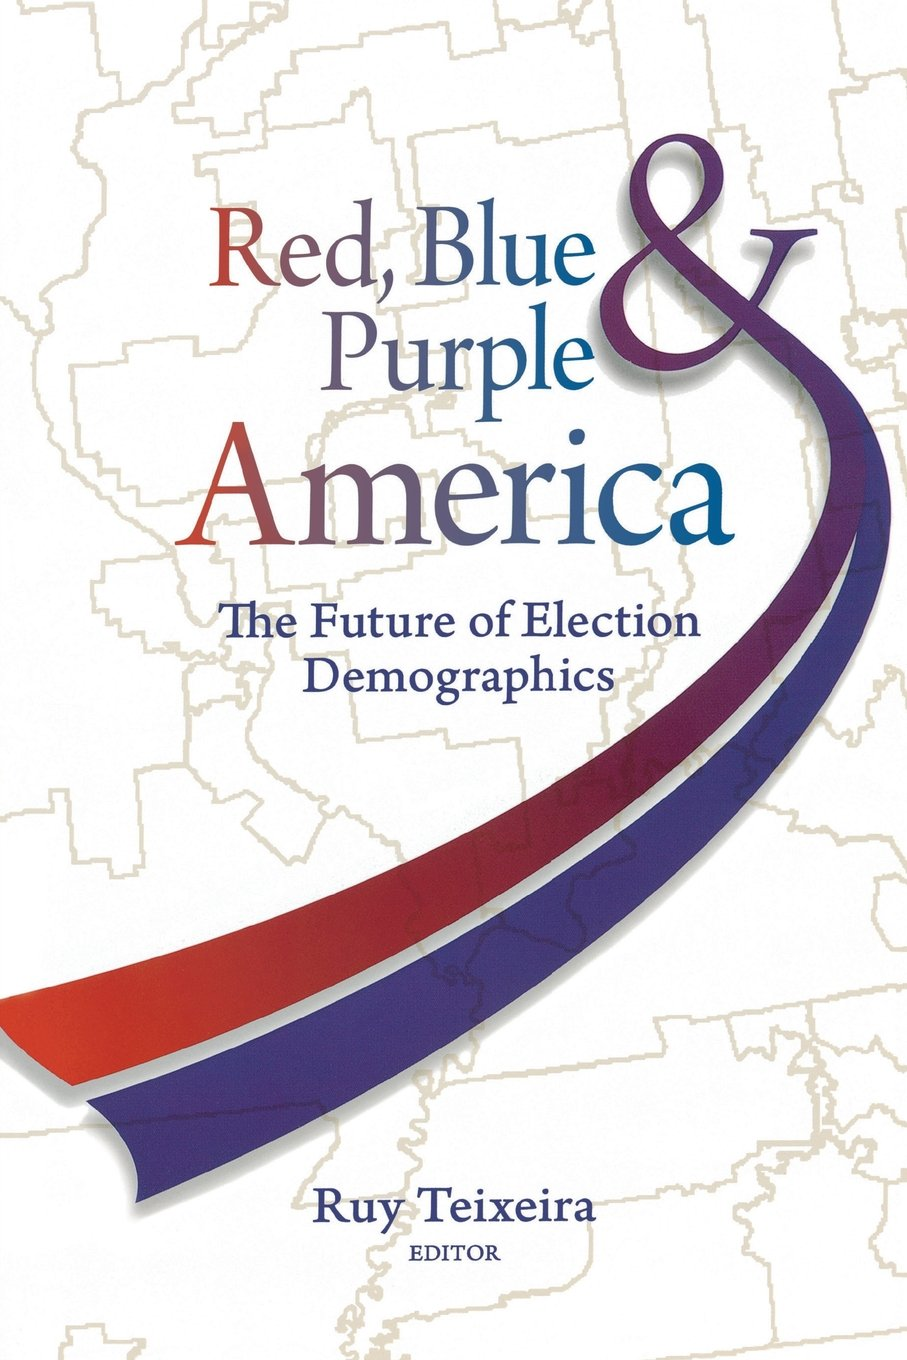 Amazon ruy teixeira books biography blog audiobooks kindle red blue and purple america the future of election demographics fandeluxe Choice Image